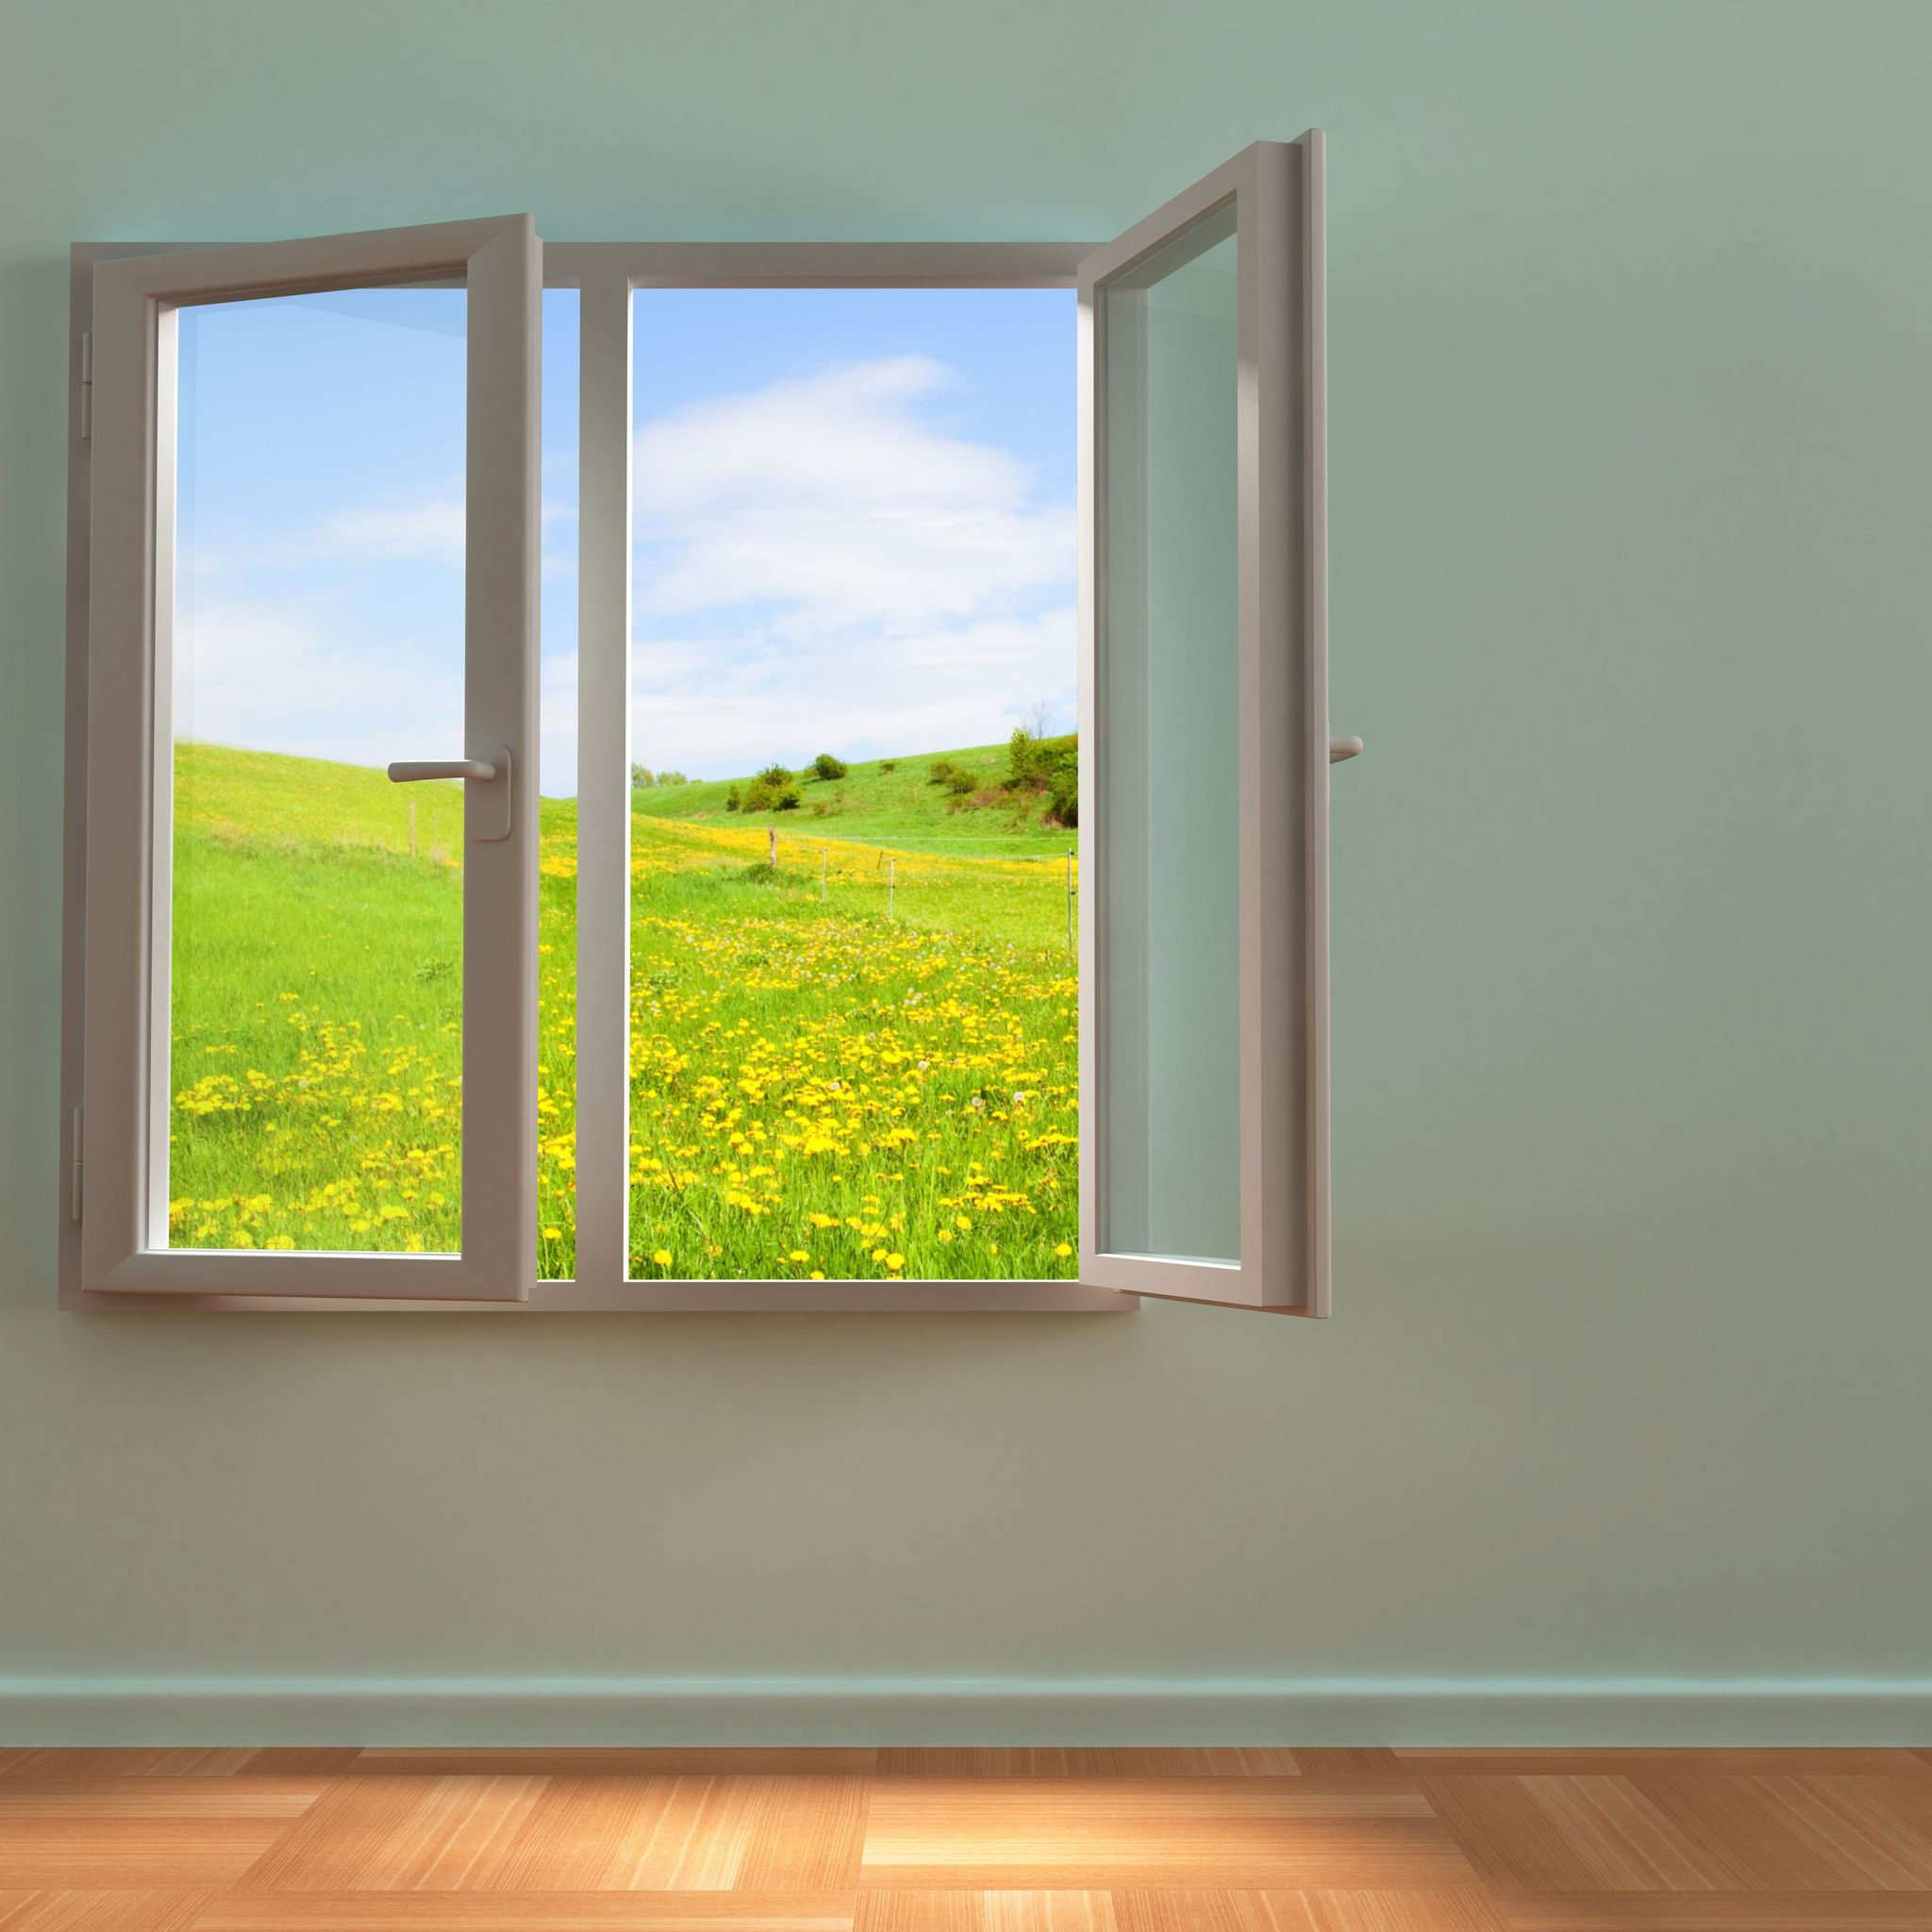 Tips on Choosing Home Windows in Arlington